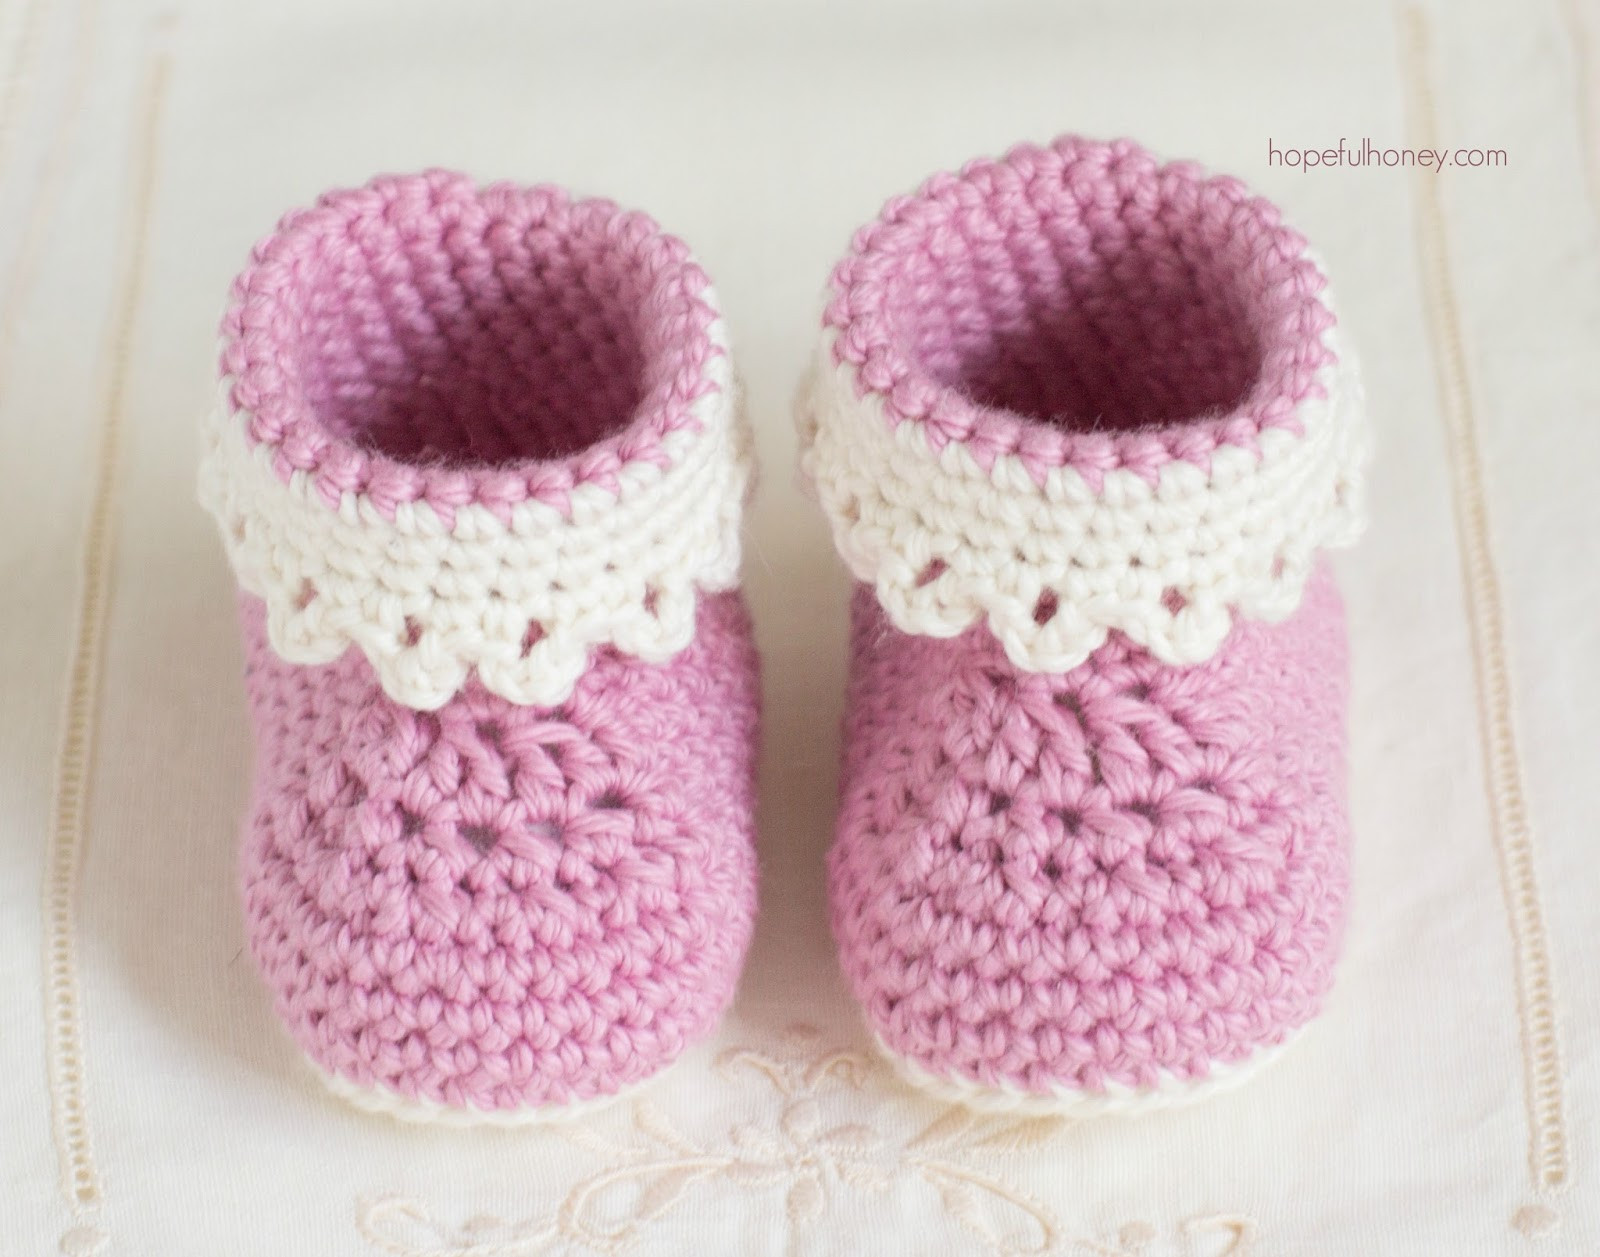 Lovely Baby Girl Booties Crochet Patterns Free Crochet Booties Pattern Of Unique 49 Ideas Crochet Booties Pattern